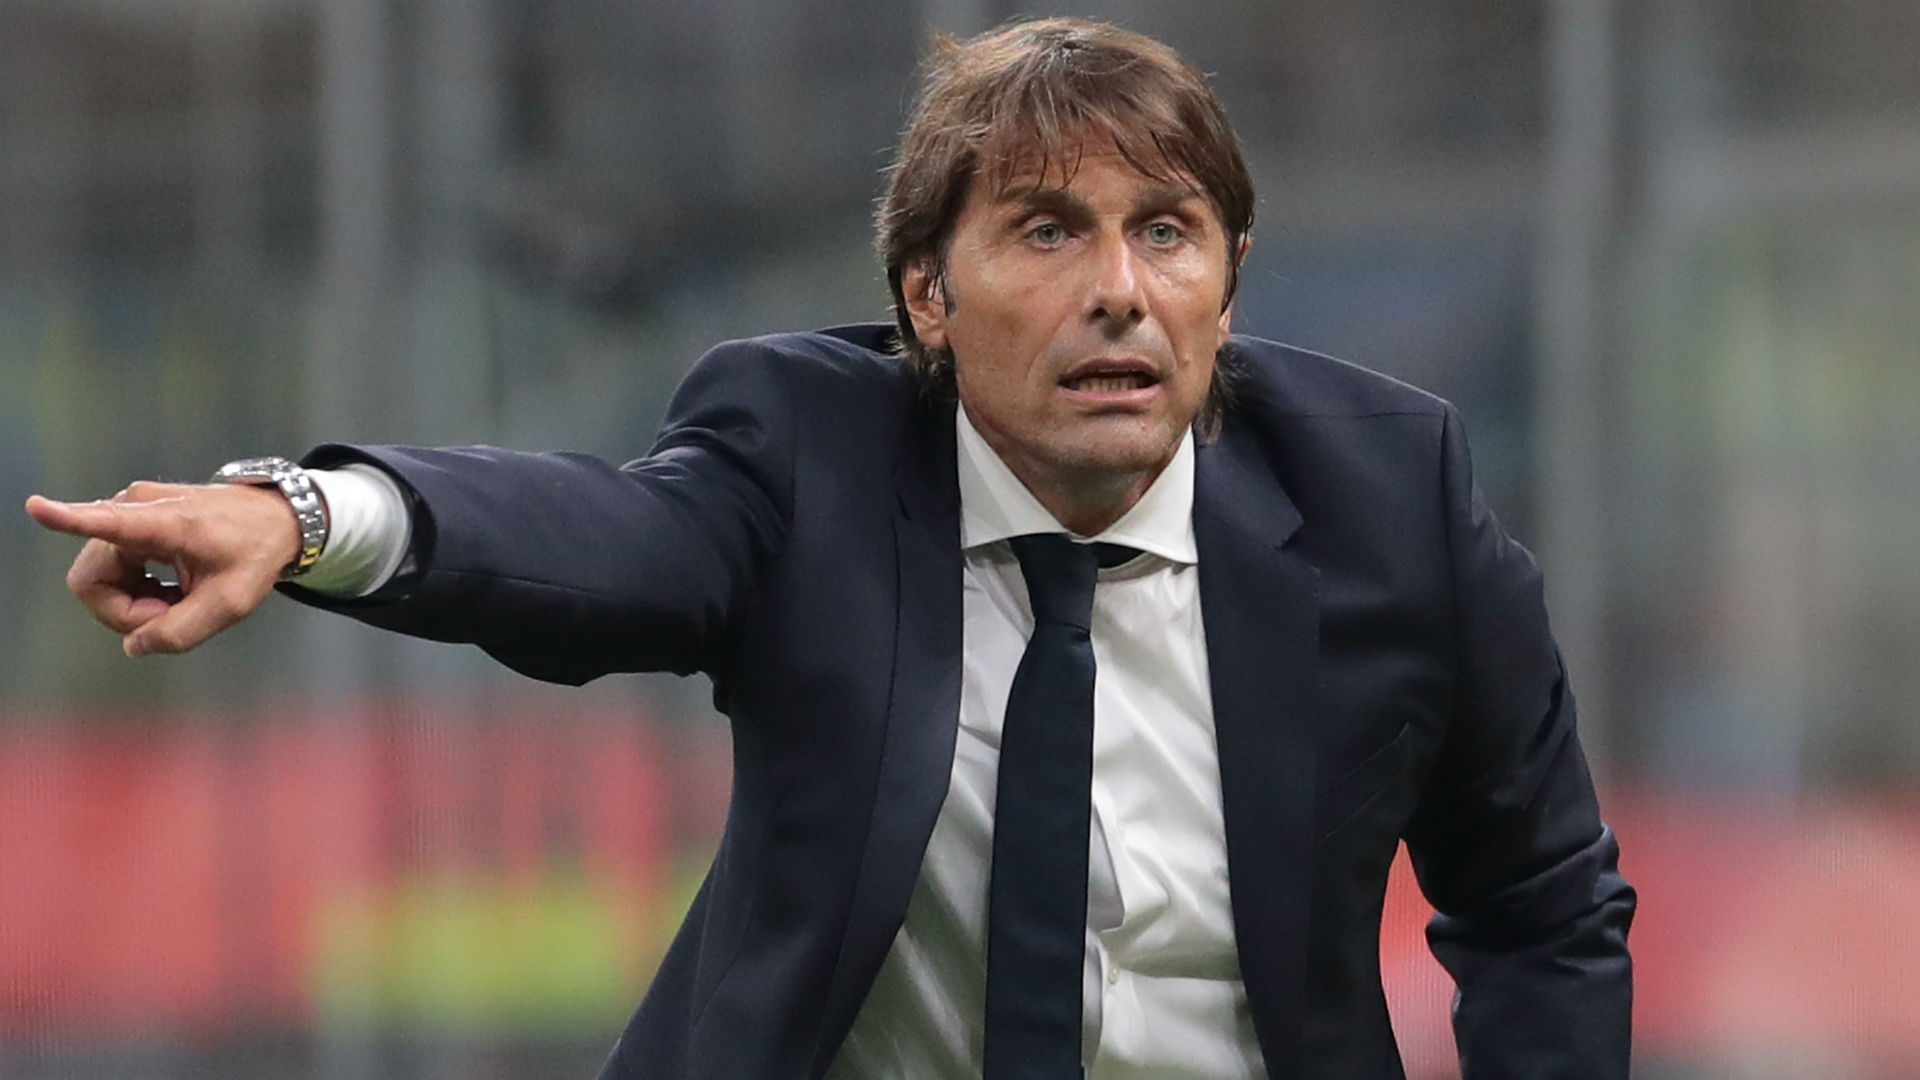 Inter moved top of Serie A after a slender win over Hellas Verona on Saturday, much to the delight of boss Antonio Conte.